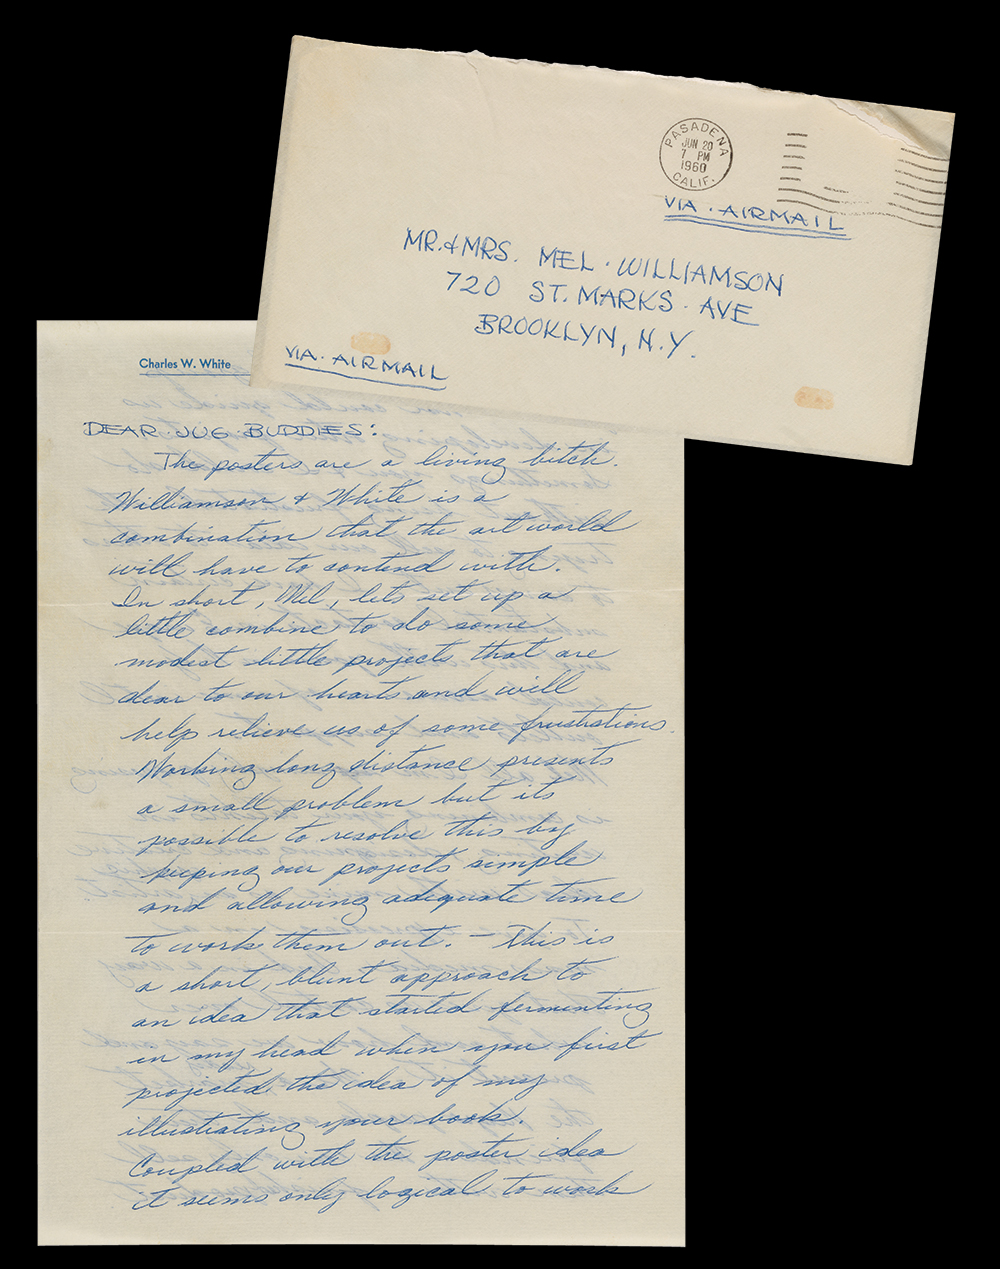 Charles White letter to Melvin Wililams dated June 20m 1960.